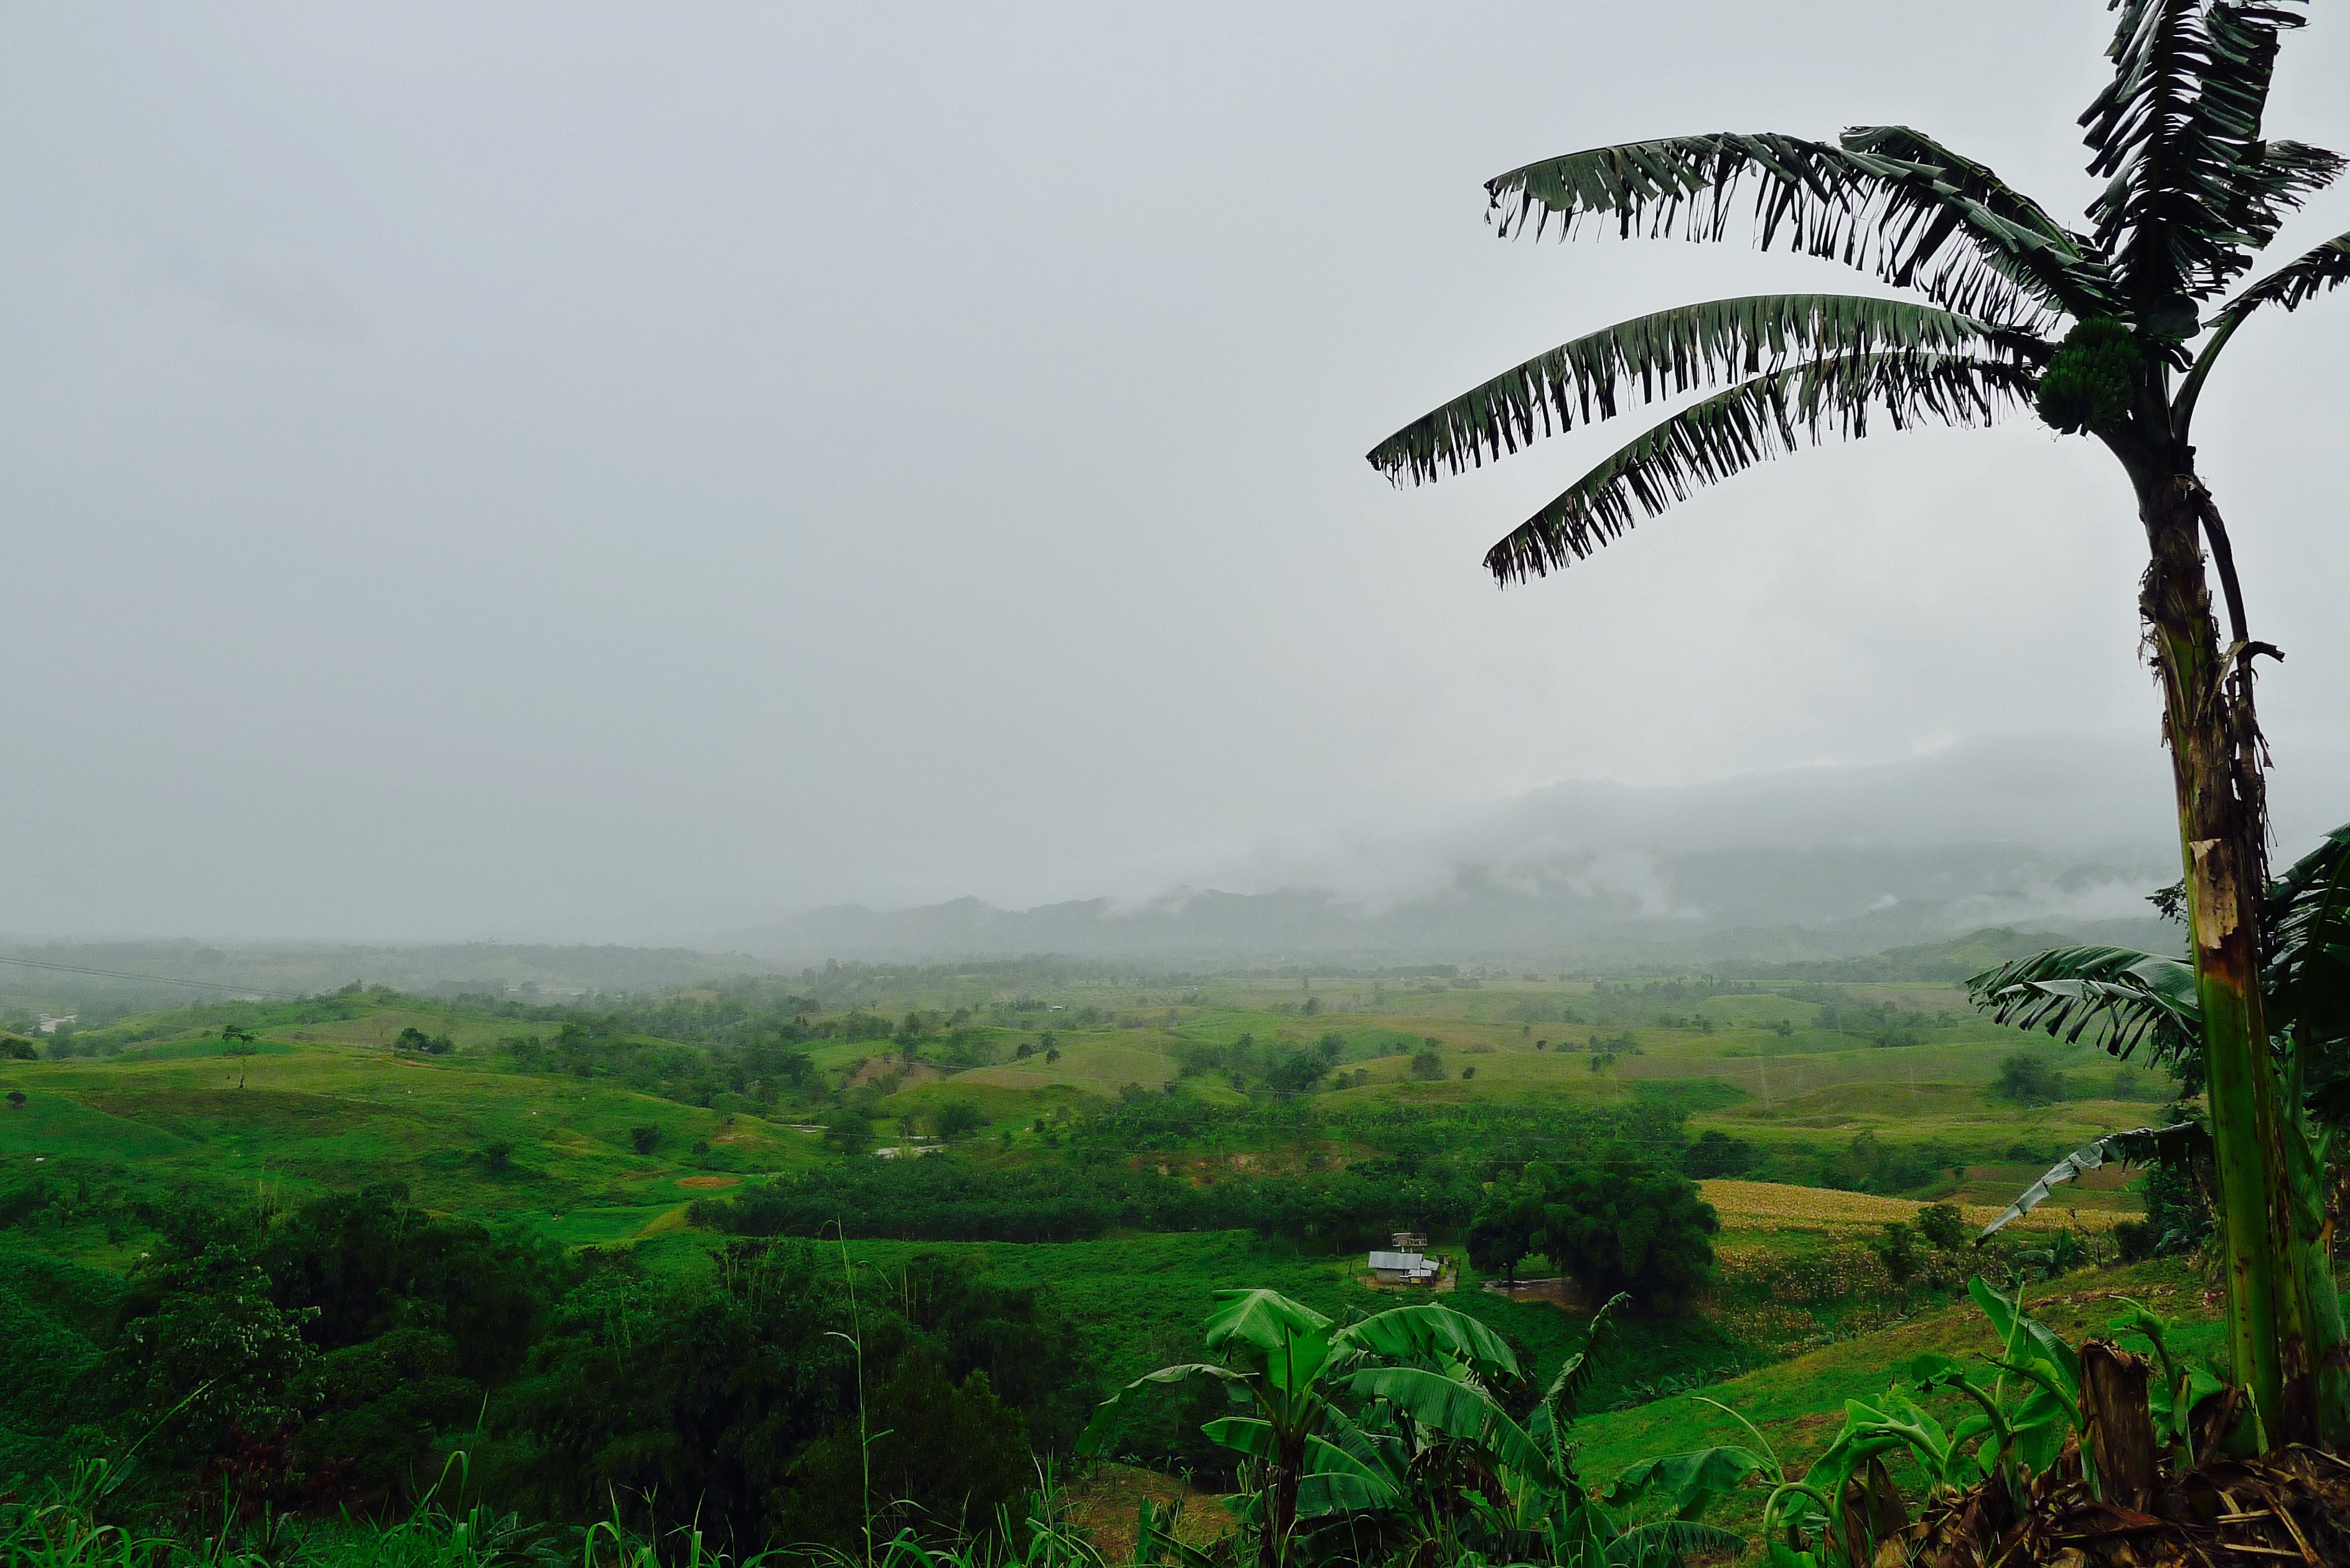 Overlooking the valley of the Jesuit mission area of Cabanglasan, Bukidnon after a heavy downpour. Photo: Fr. Jboy Gonzales SJ